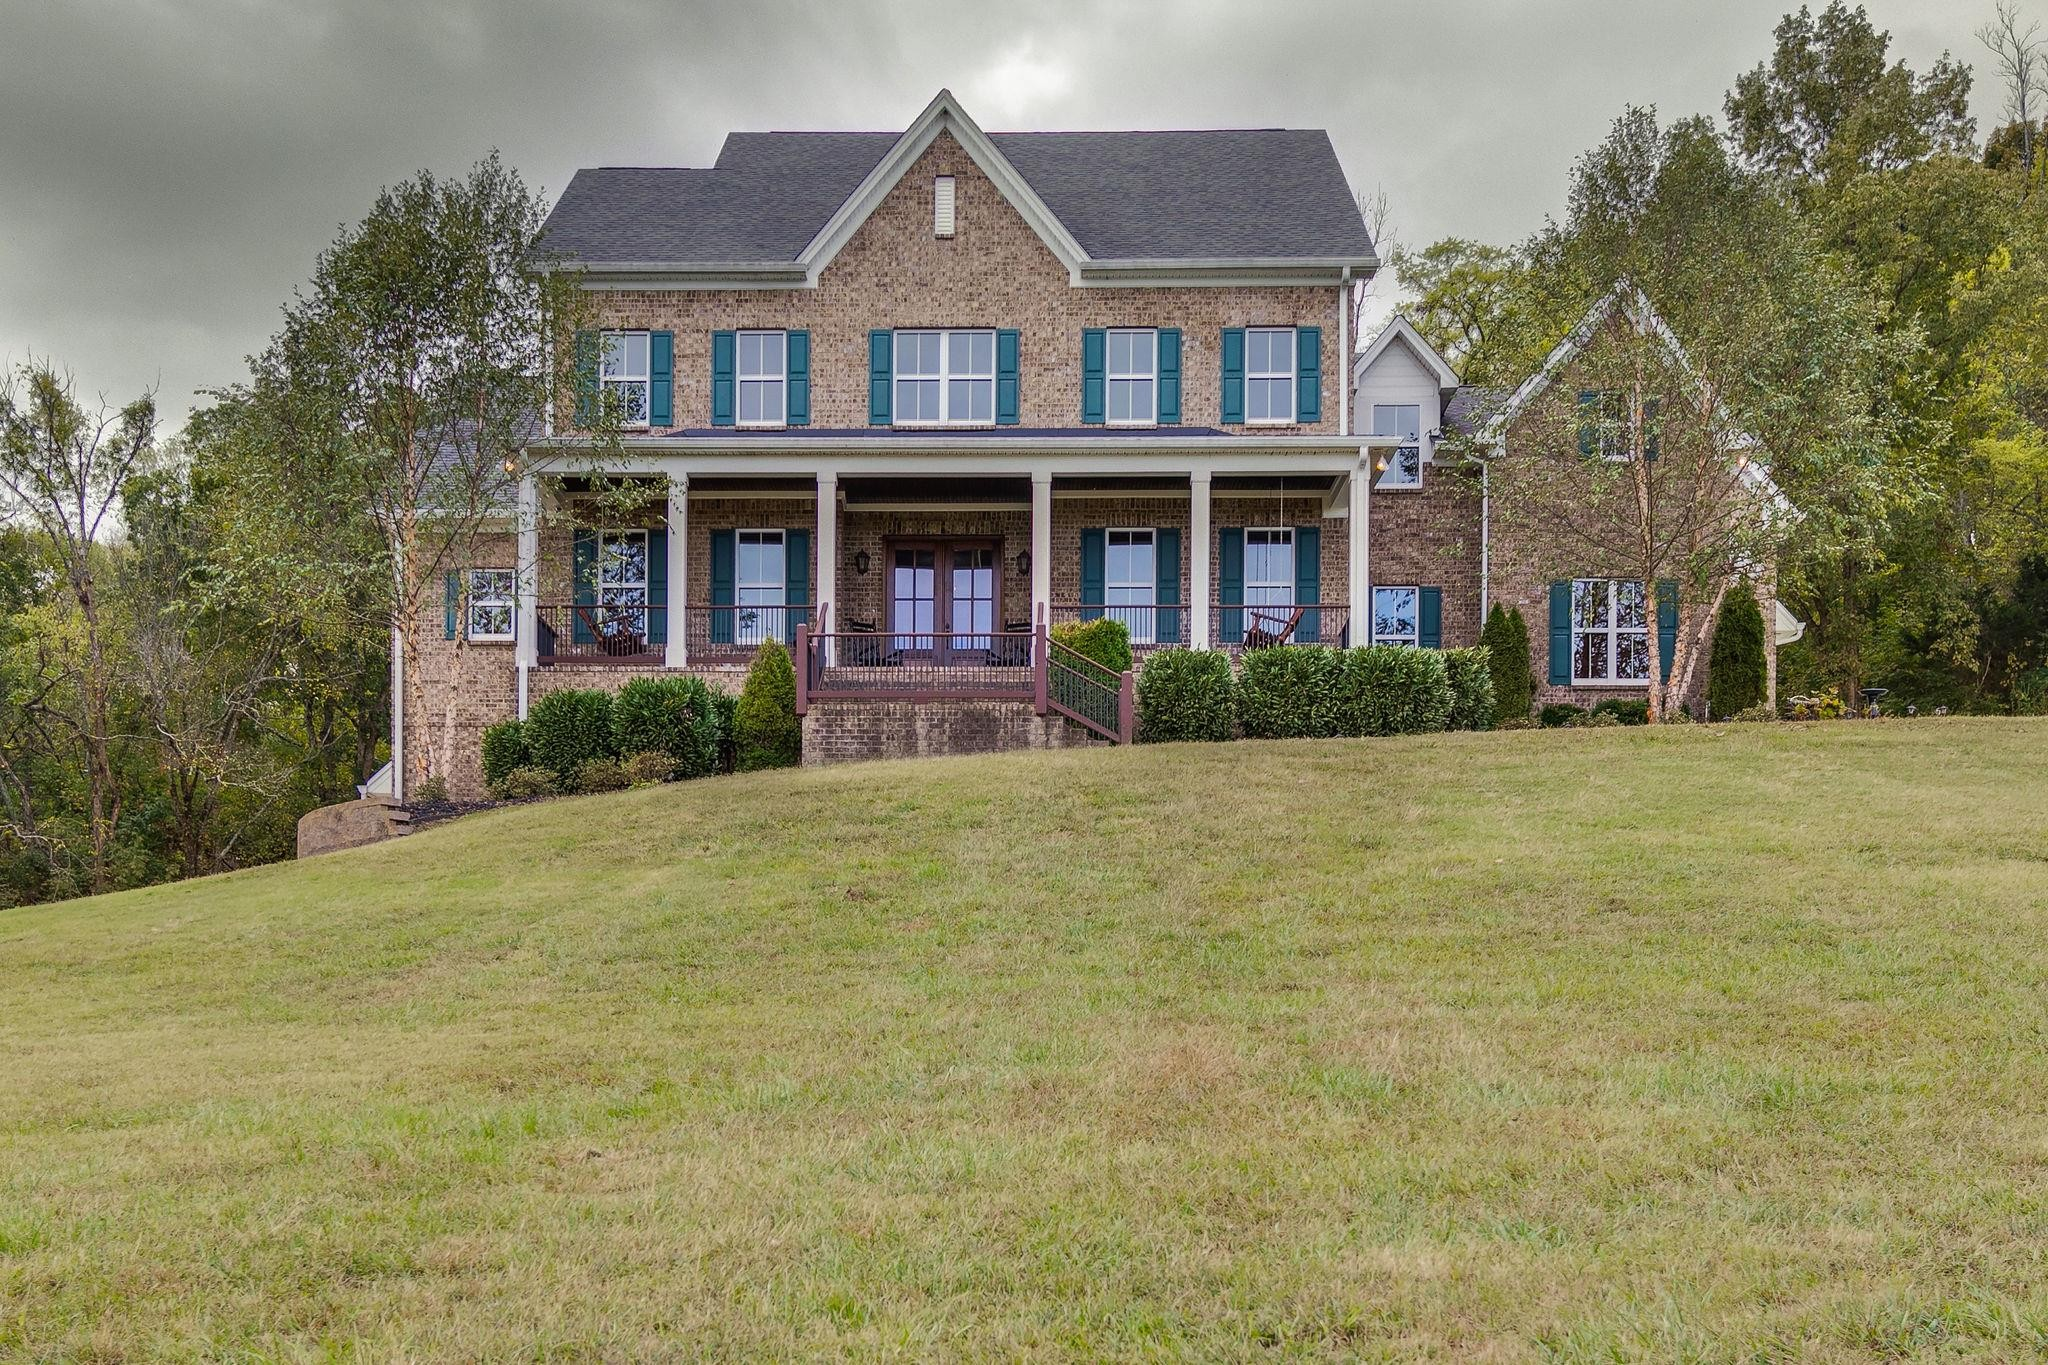 2000 Skyview Ln, Thompsons Station, TN 37179 - Thompsons Station, TN real estate listing